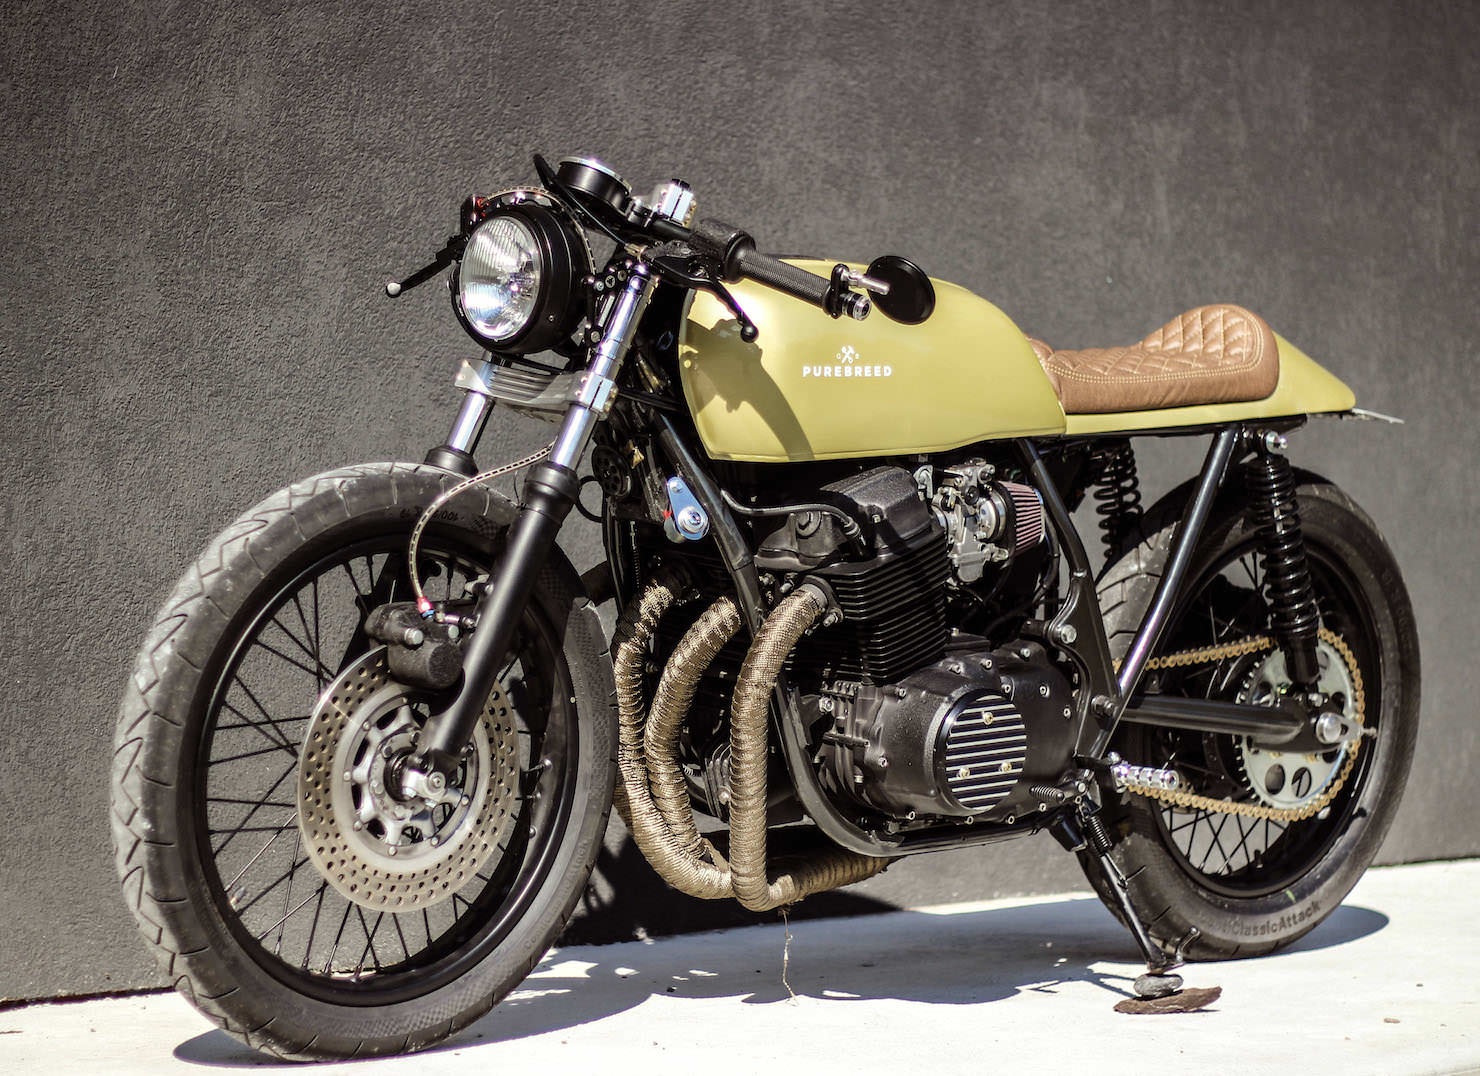 Honda Custom Bikes Wiring Diagrams Motorcycle Diagram Cb750 By Purebreed Fine Motorcycles For Sale